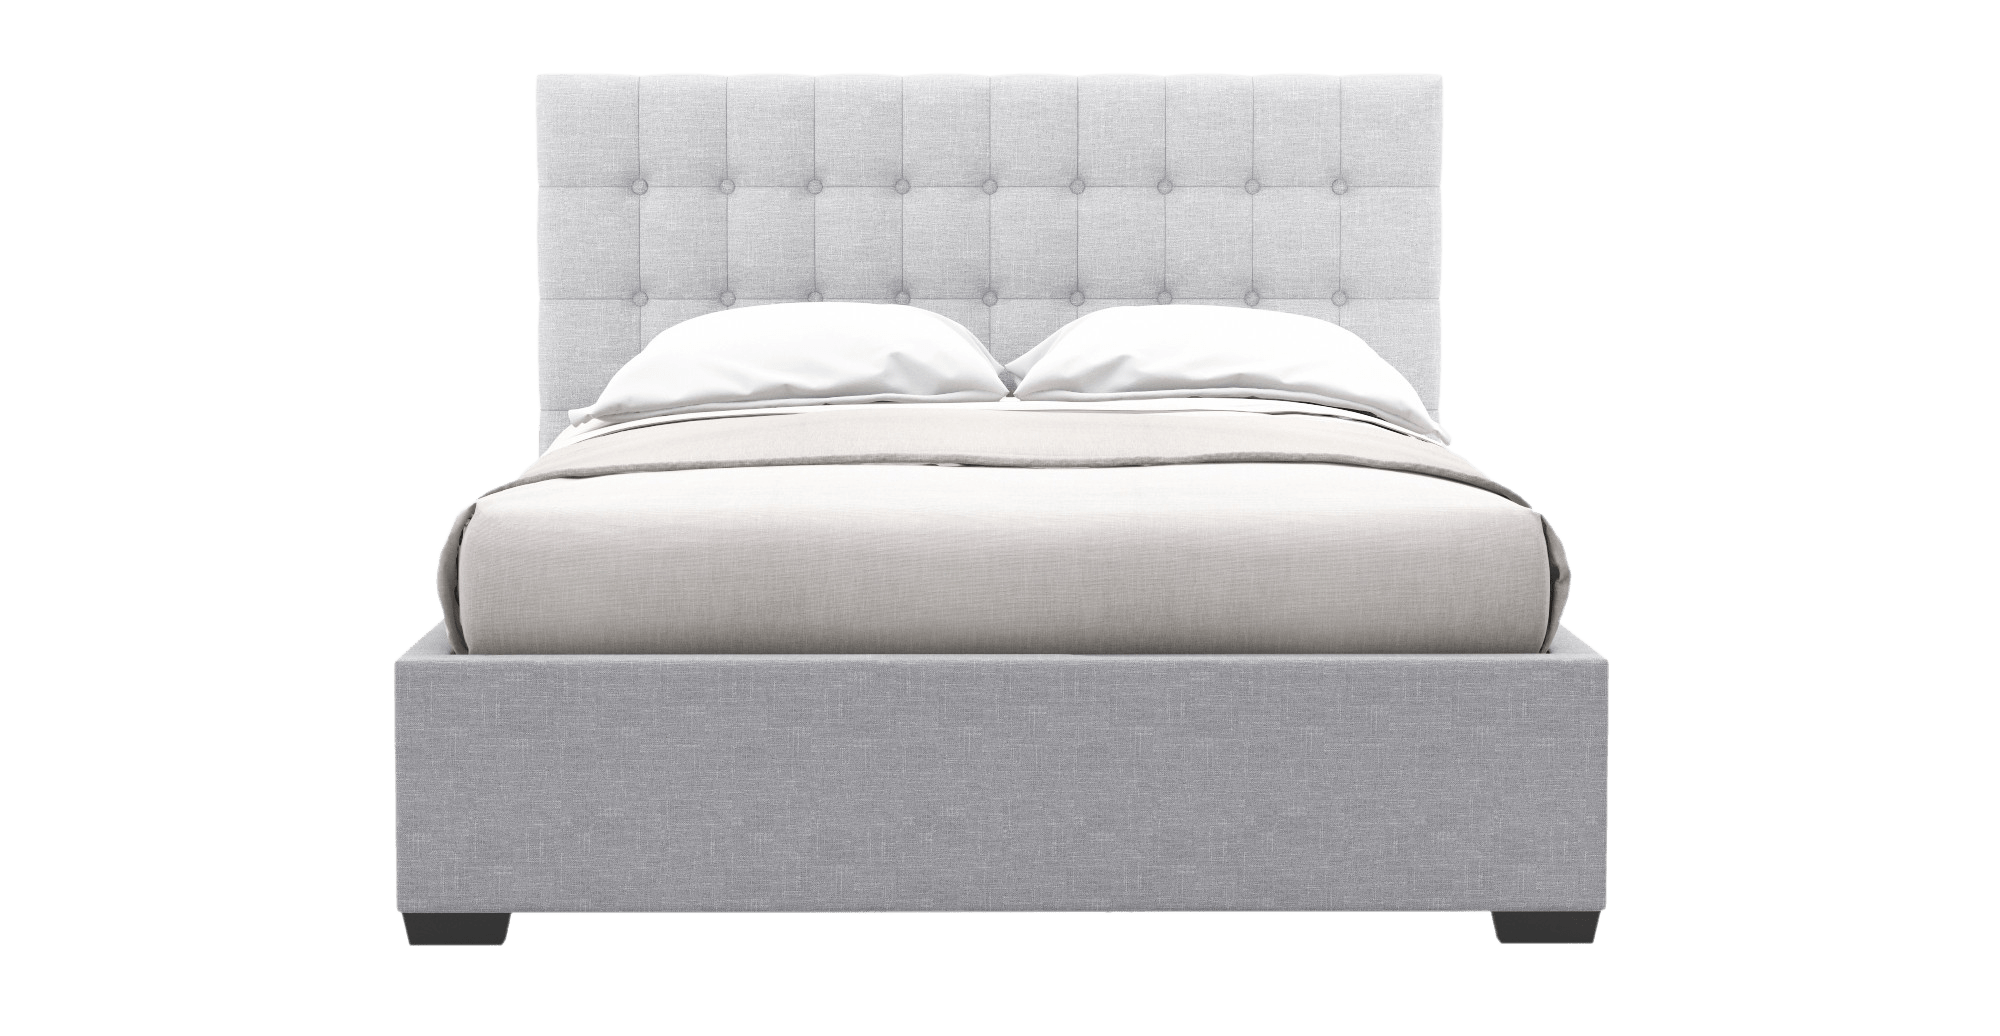 Gas Lift Queen Beds Buy Leia Gas Lift Queen Size Bed Frame Online In Australia